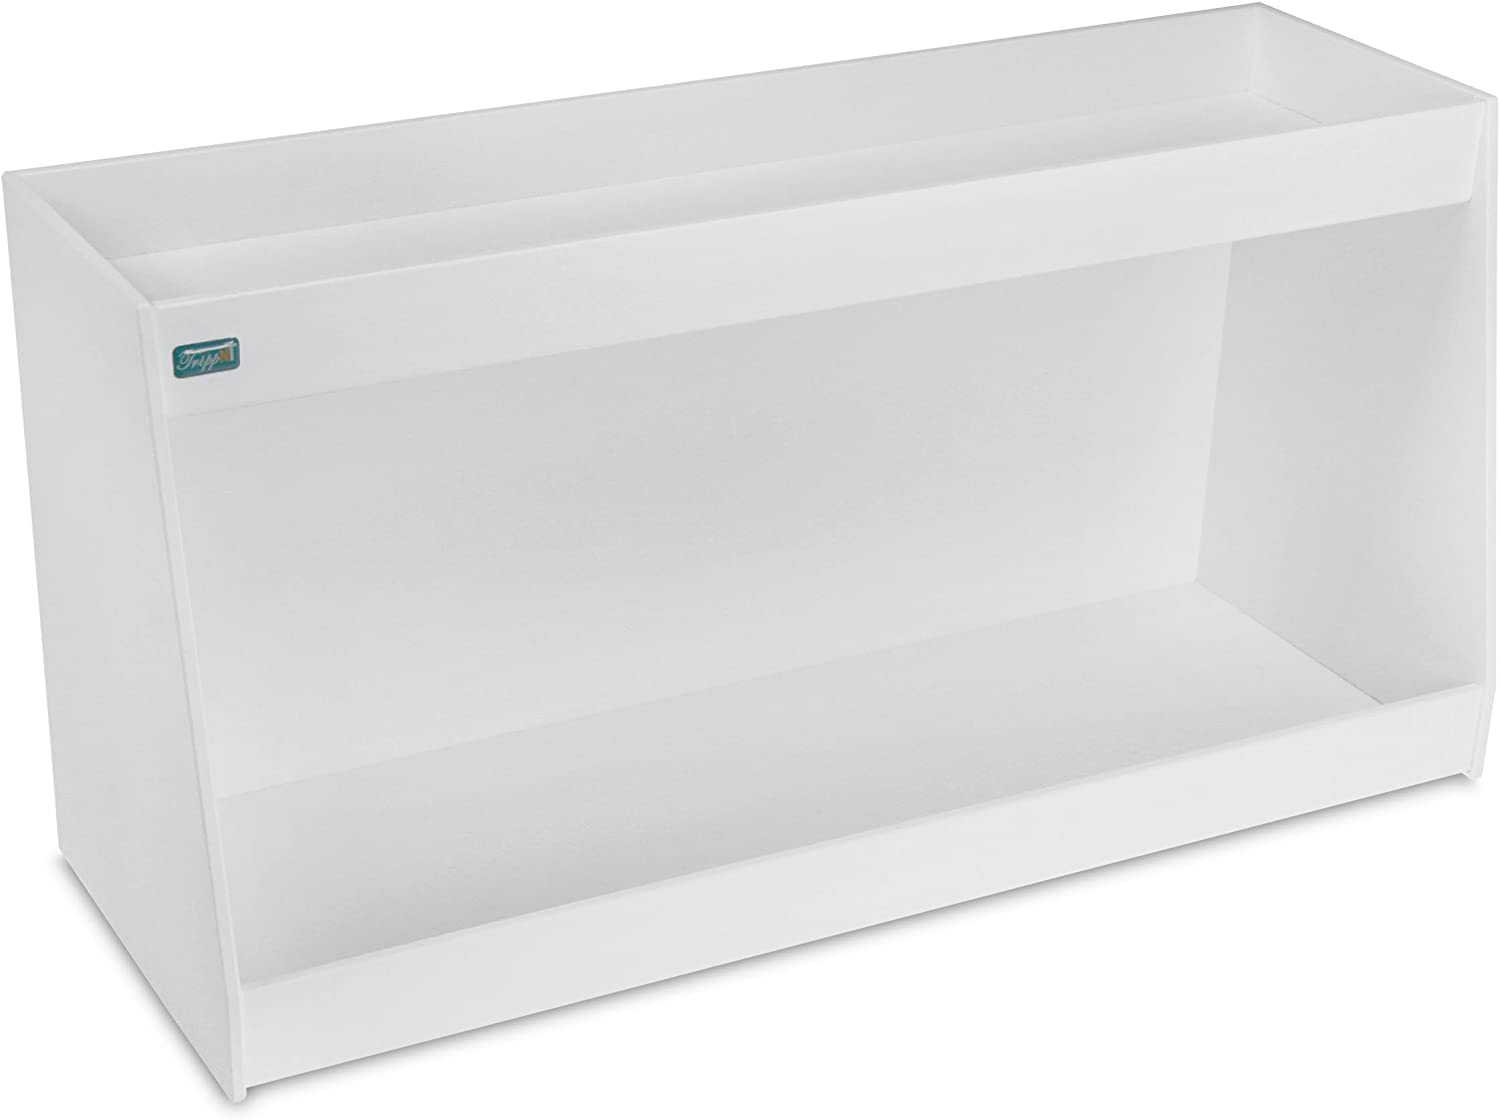 TrippNT 50223 PVC Angled Double Safety Shelves, 24-Inch Width x 12-Inch Height x 9-Inch Depth, White